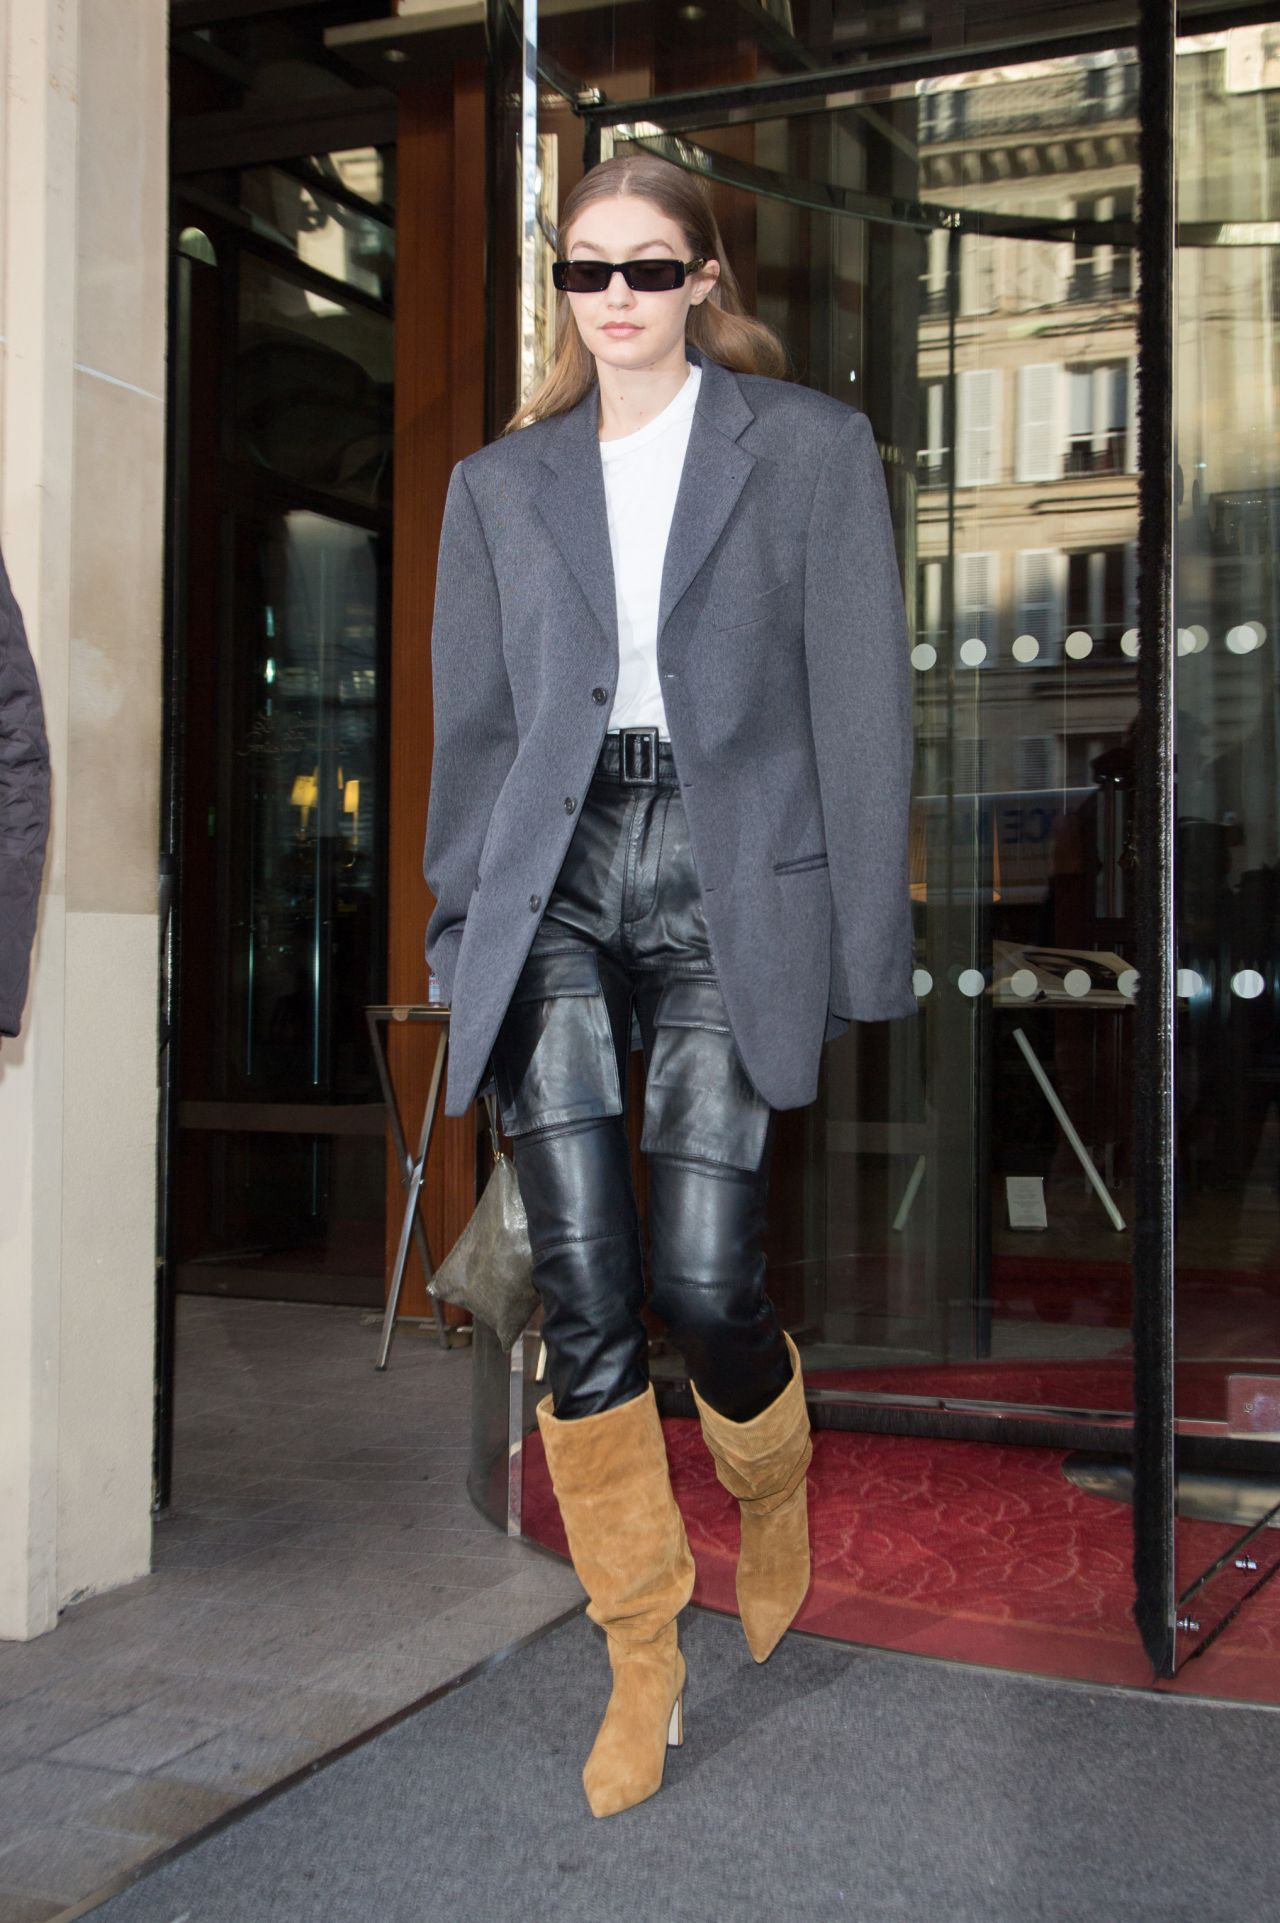 gigi-hadid-in-leather-cargo-pants-leaving-the-royal-monceau-hotel-in-paris